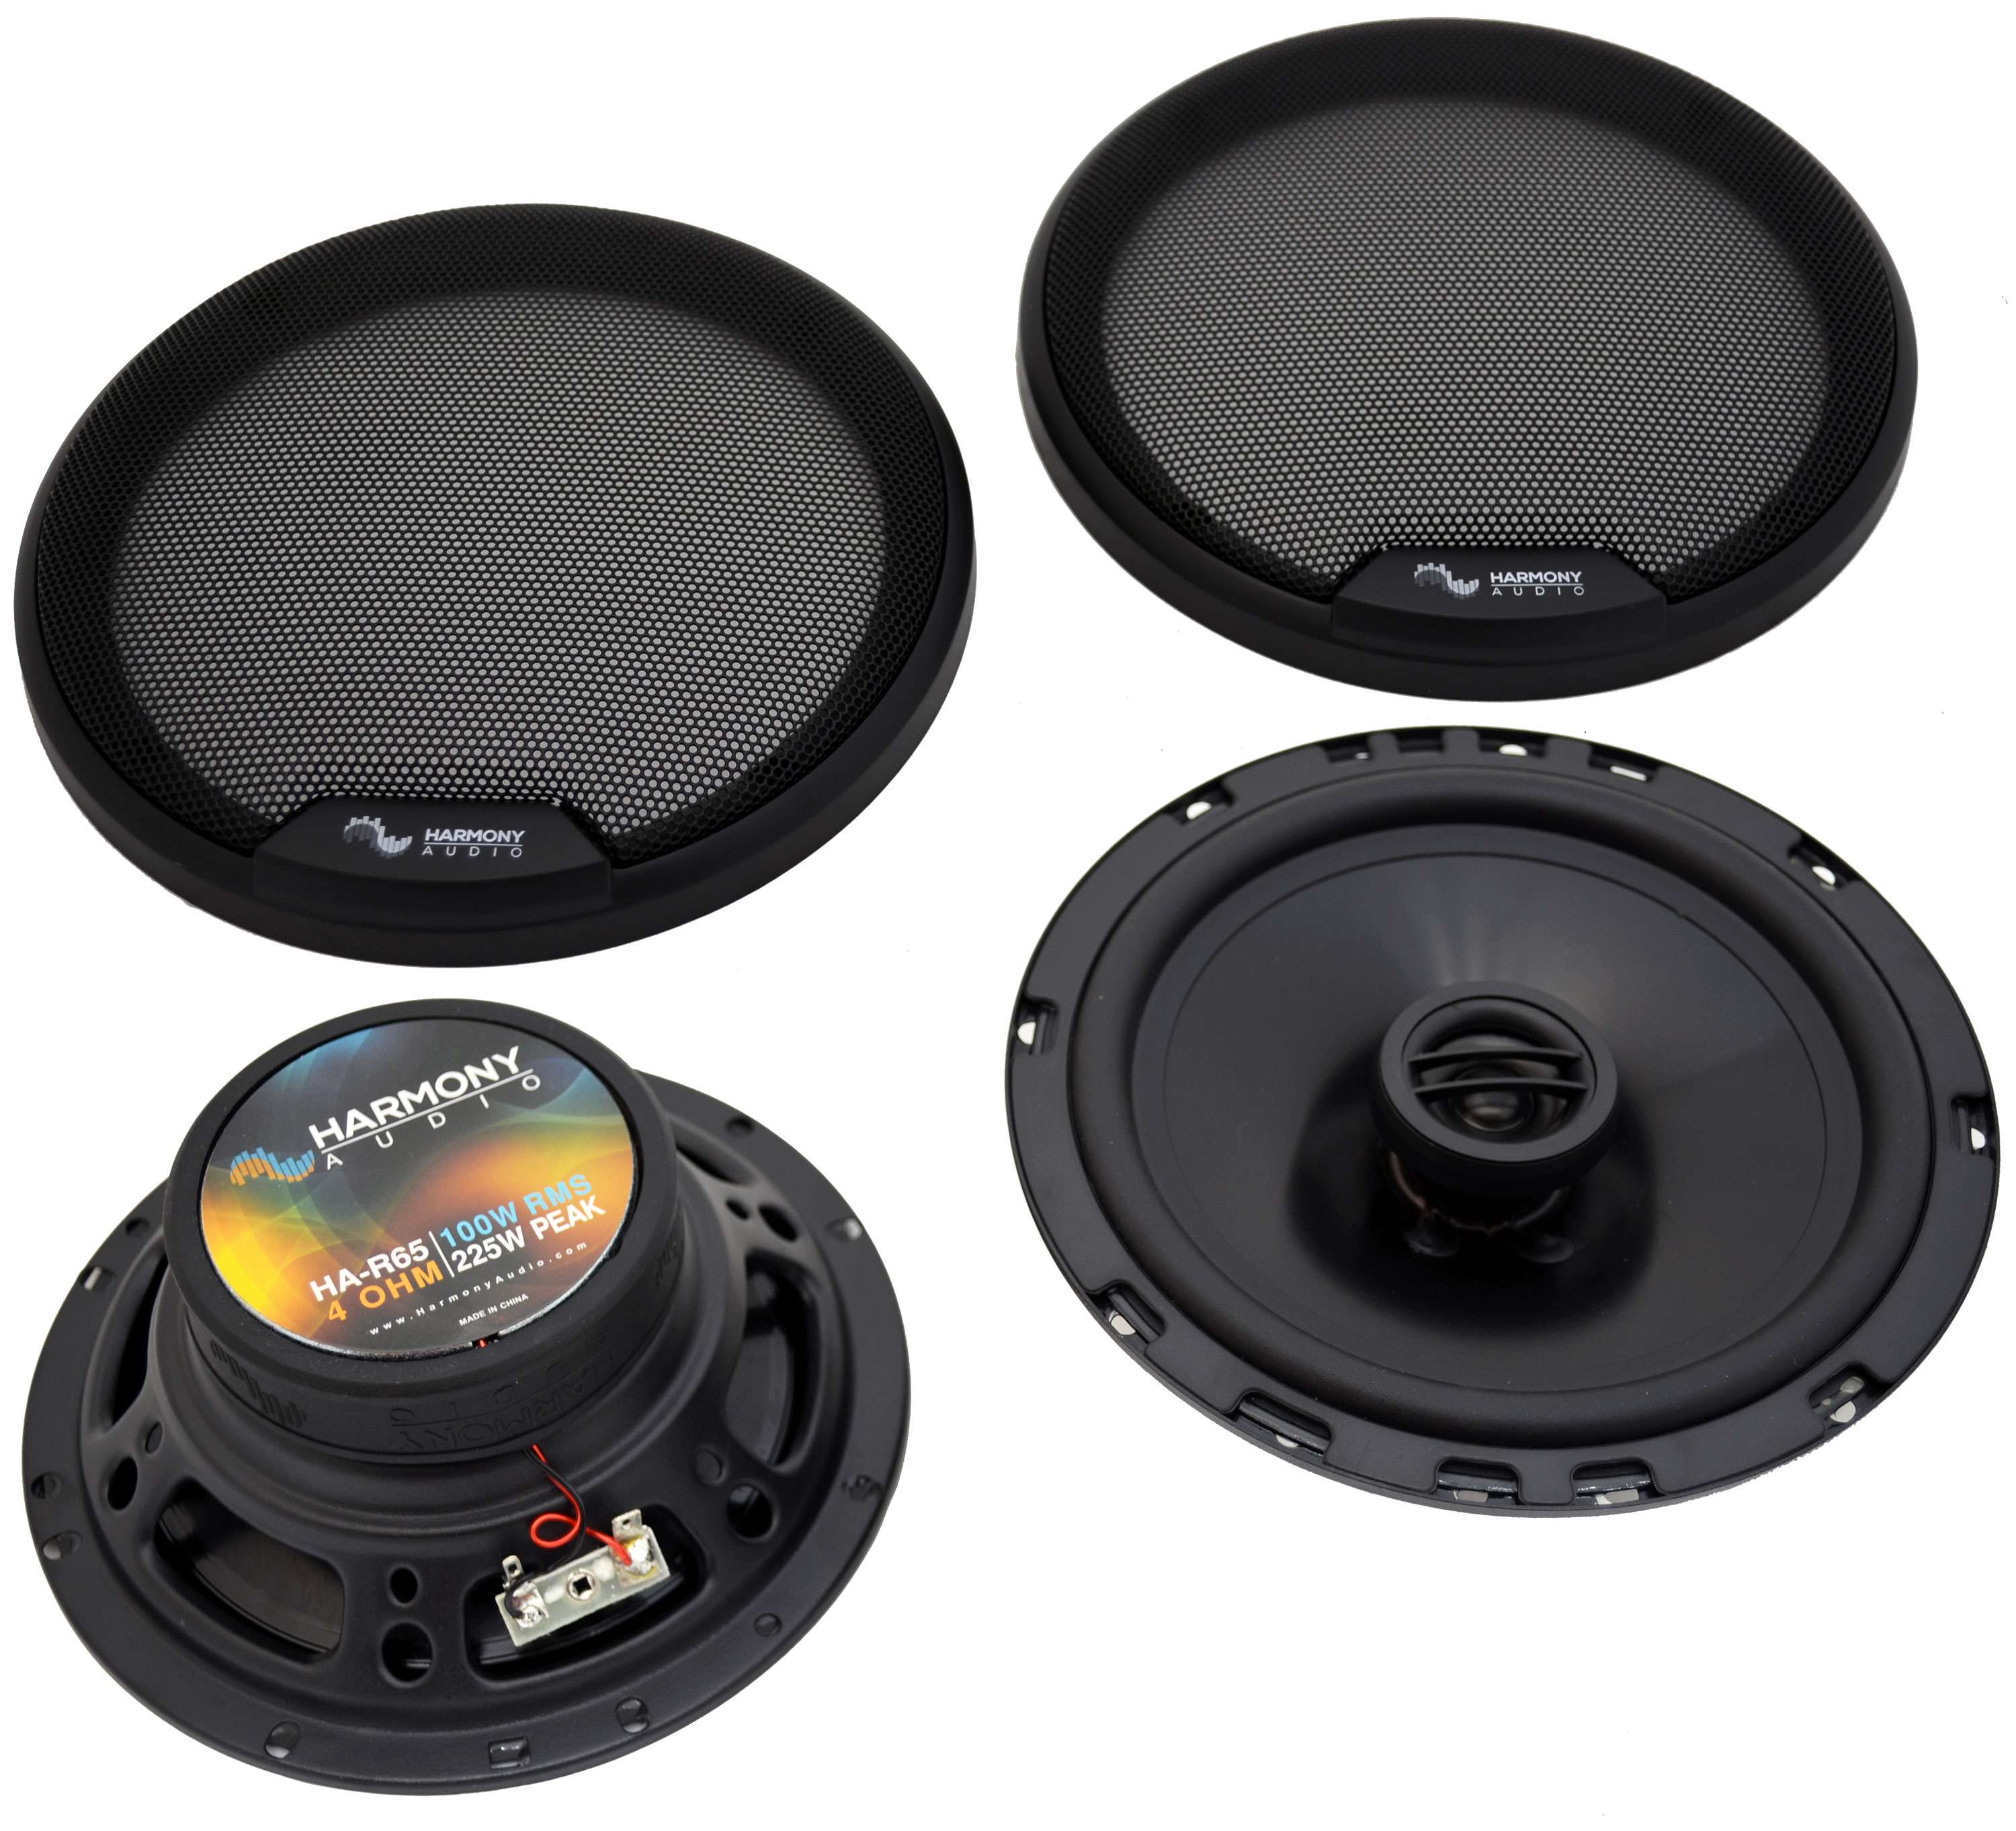 Fits Audi S6 2002-2004 Rear Deck Replacement Speaker Harmony HA-R65 Speakers New